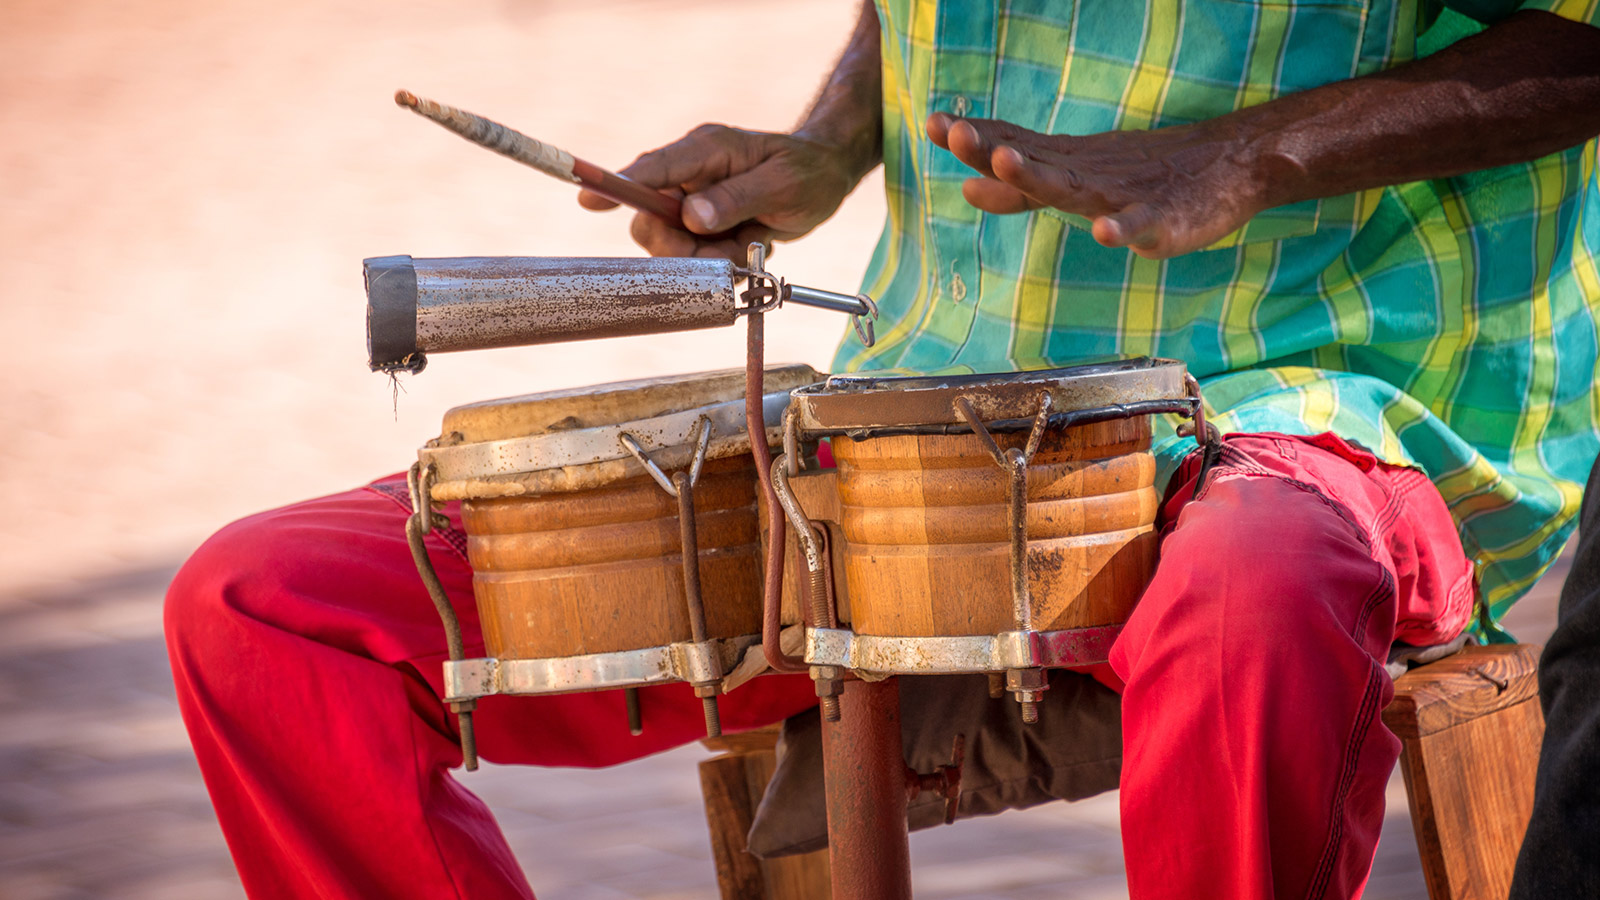 Street musician playing drums